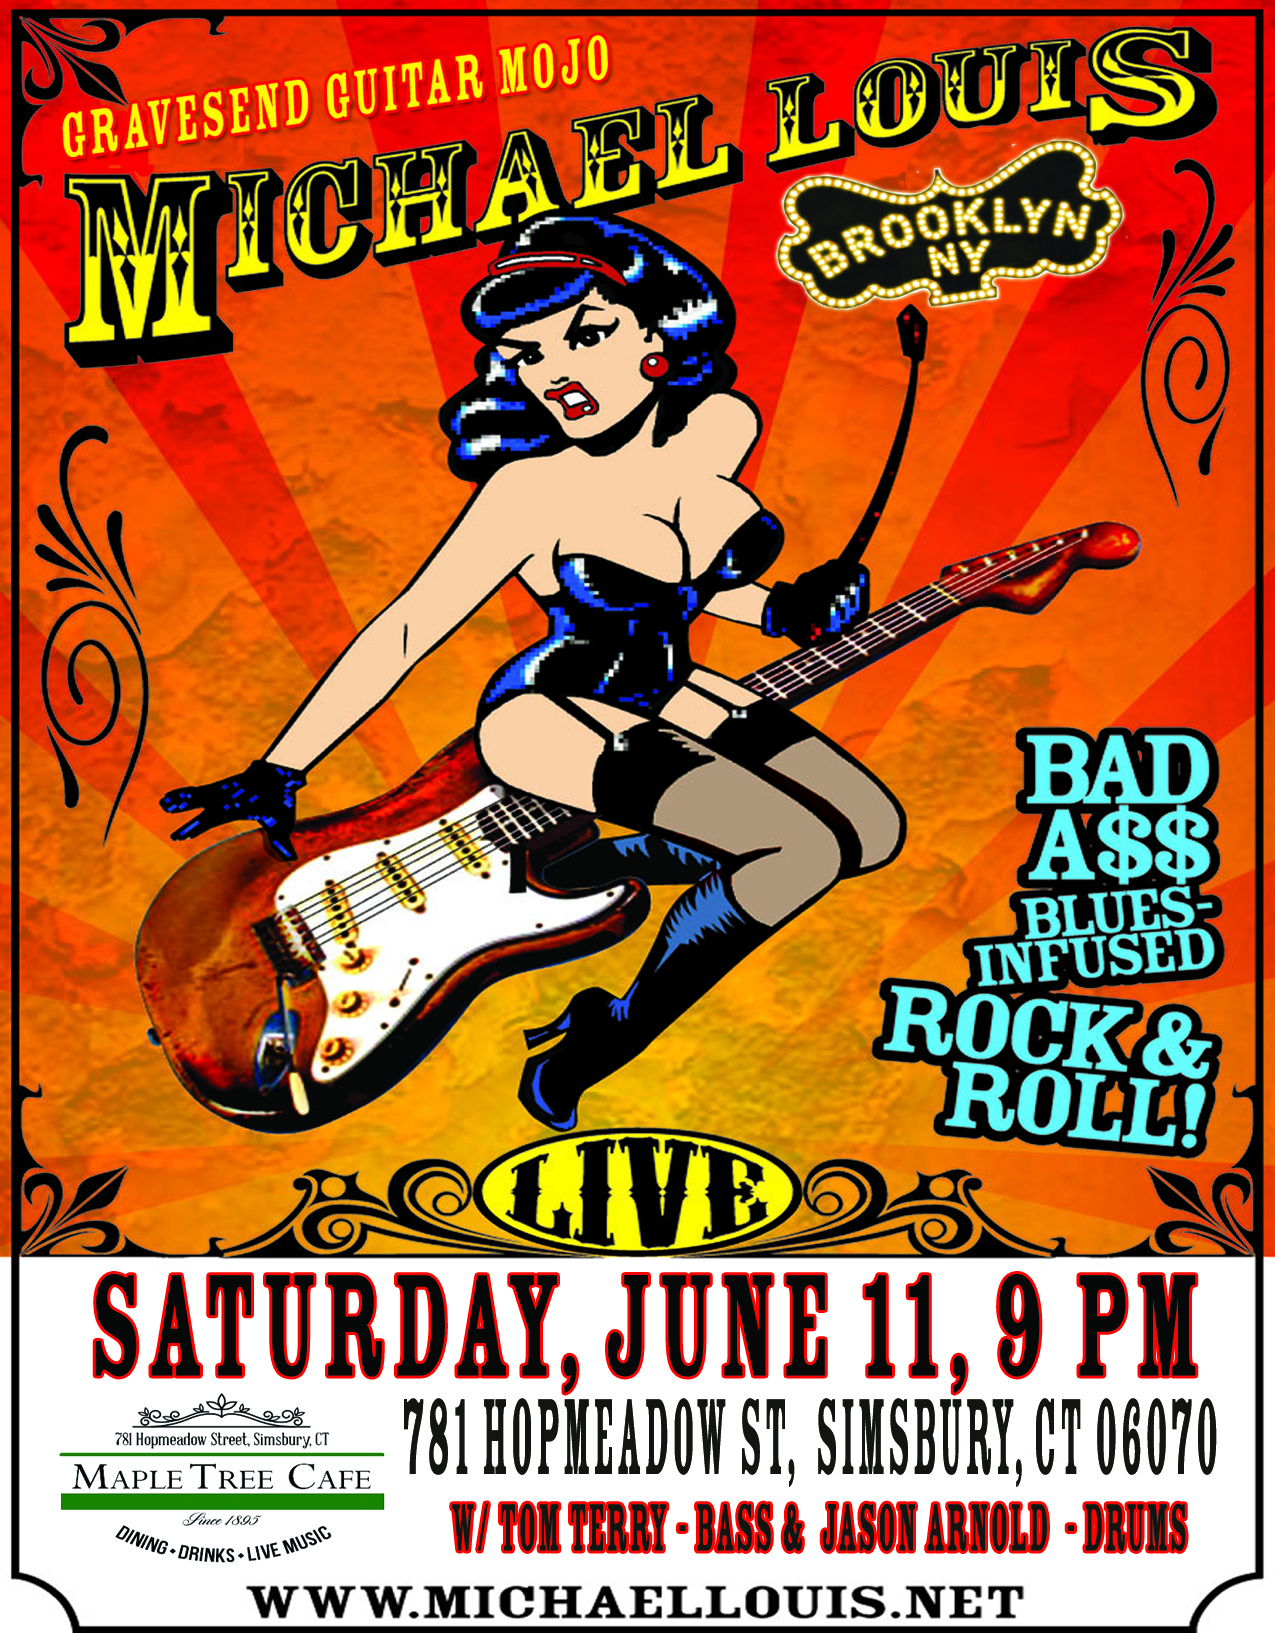 TMLB GIRL ON GUITAR BAD A$$ BROOKLYN NY LOGO GRAVESEND GUITAR MOJO MAPLE TREE CAFE VENUE WEBSITE POSTER 6.11.16 8.5 X 11 JPEG